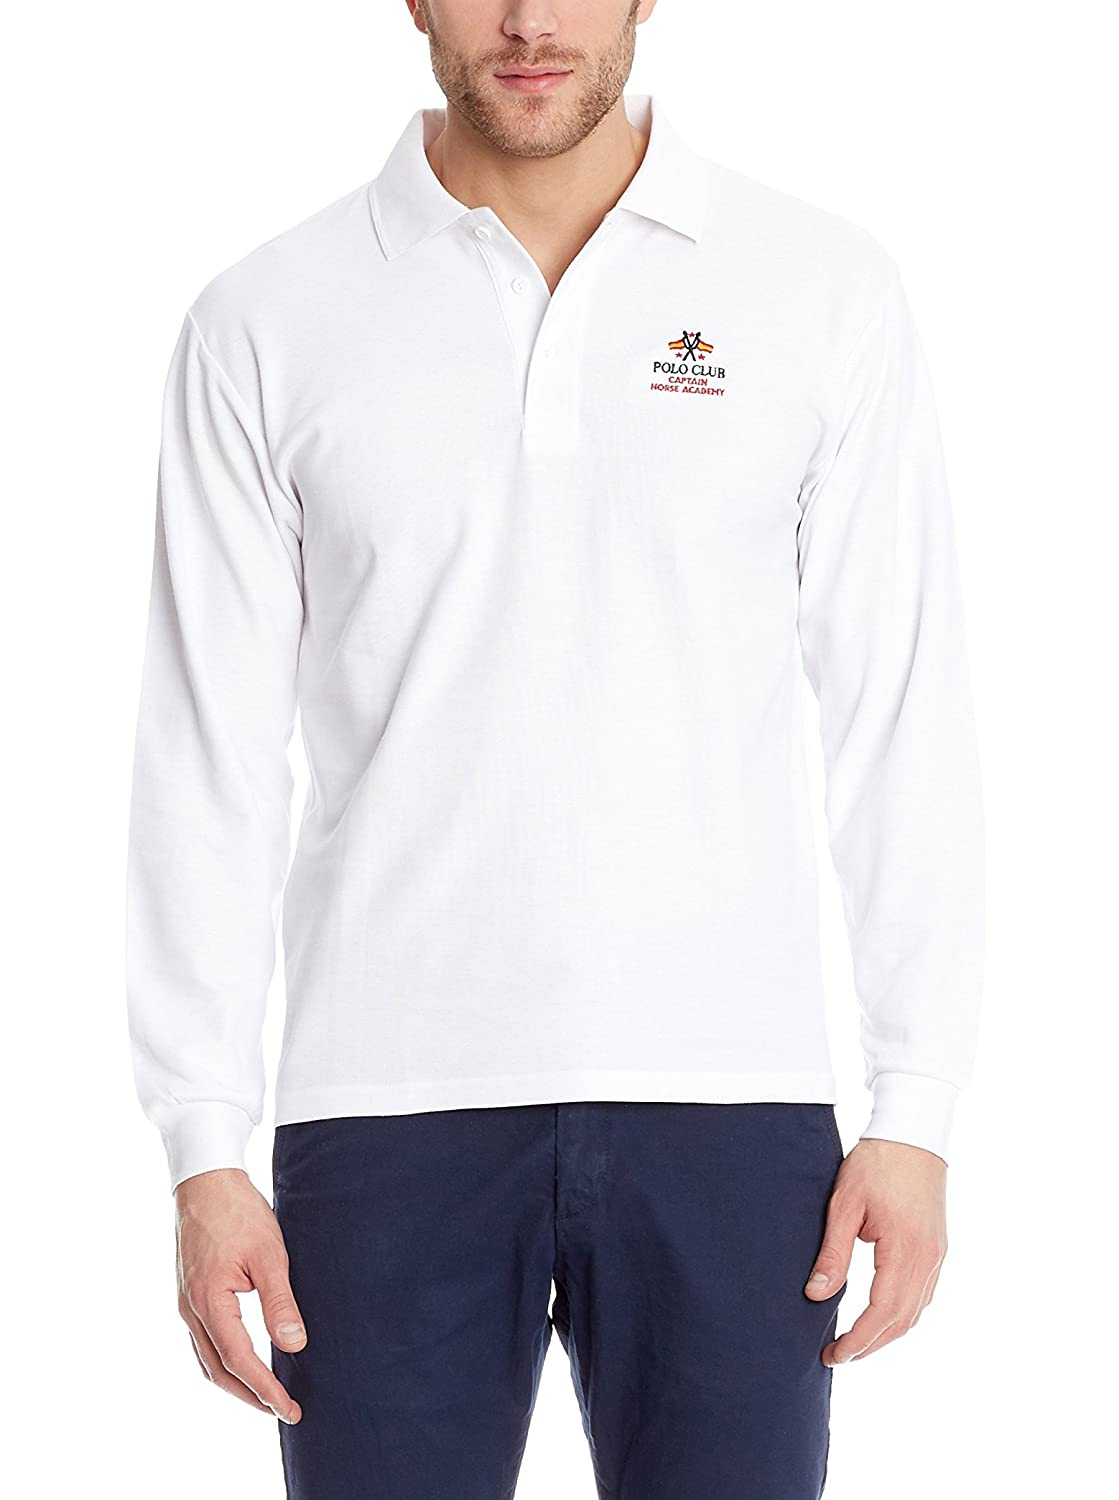 POLO CLUB Polo Regular Fit Blanco 2XL: Amazon.es: Ropa y accesorios